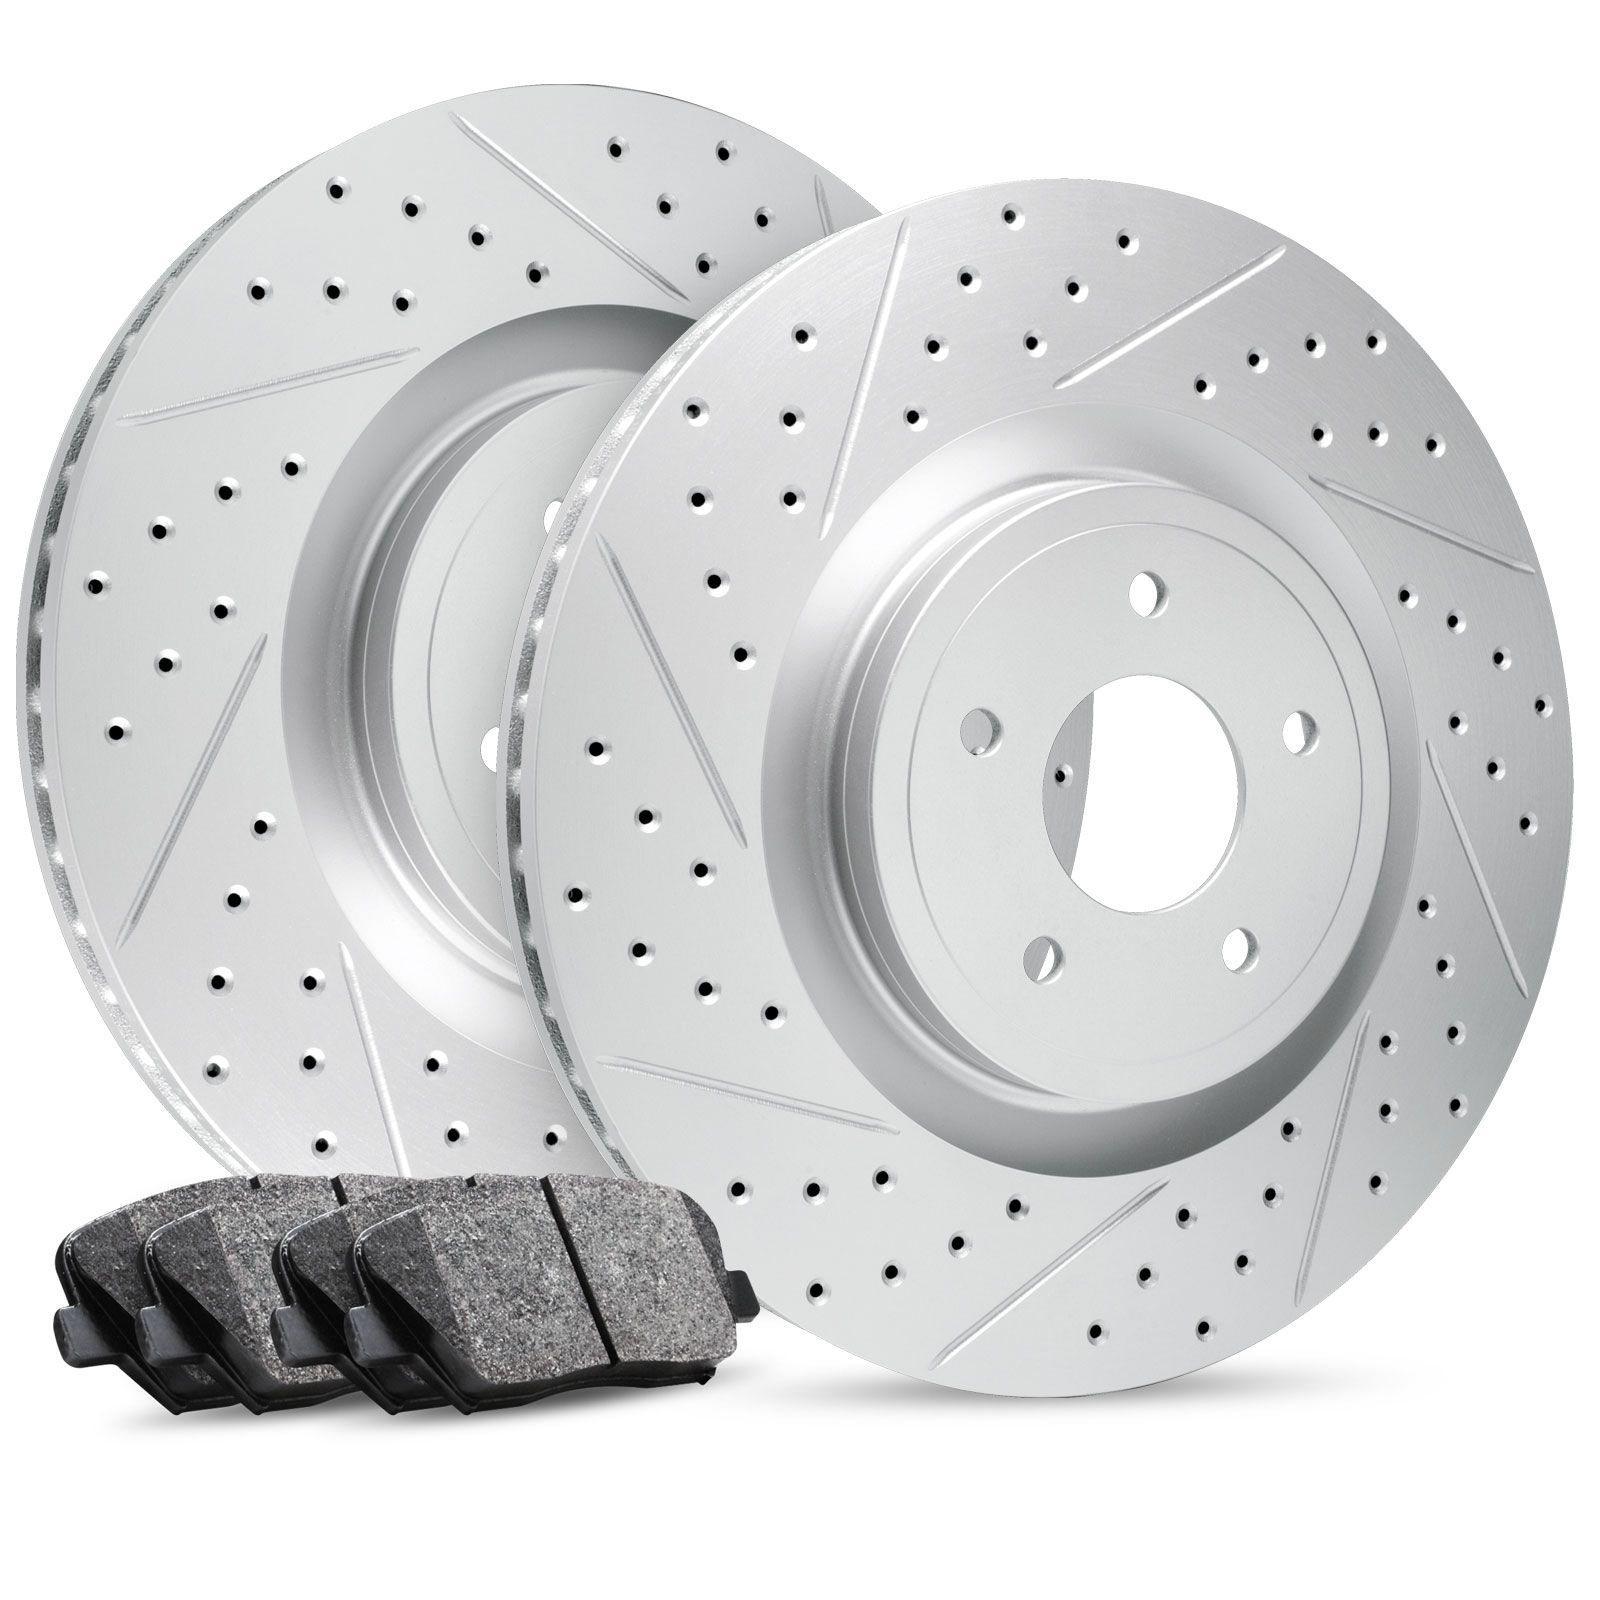 For 2011 2012 2013 2014 2015 FORD FIESTA Front Drill Slot Brake Disc Rotors